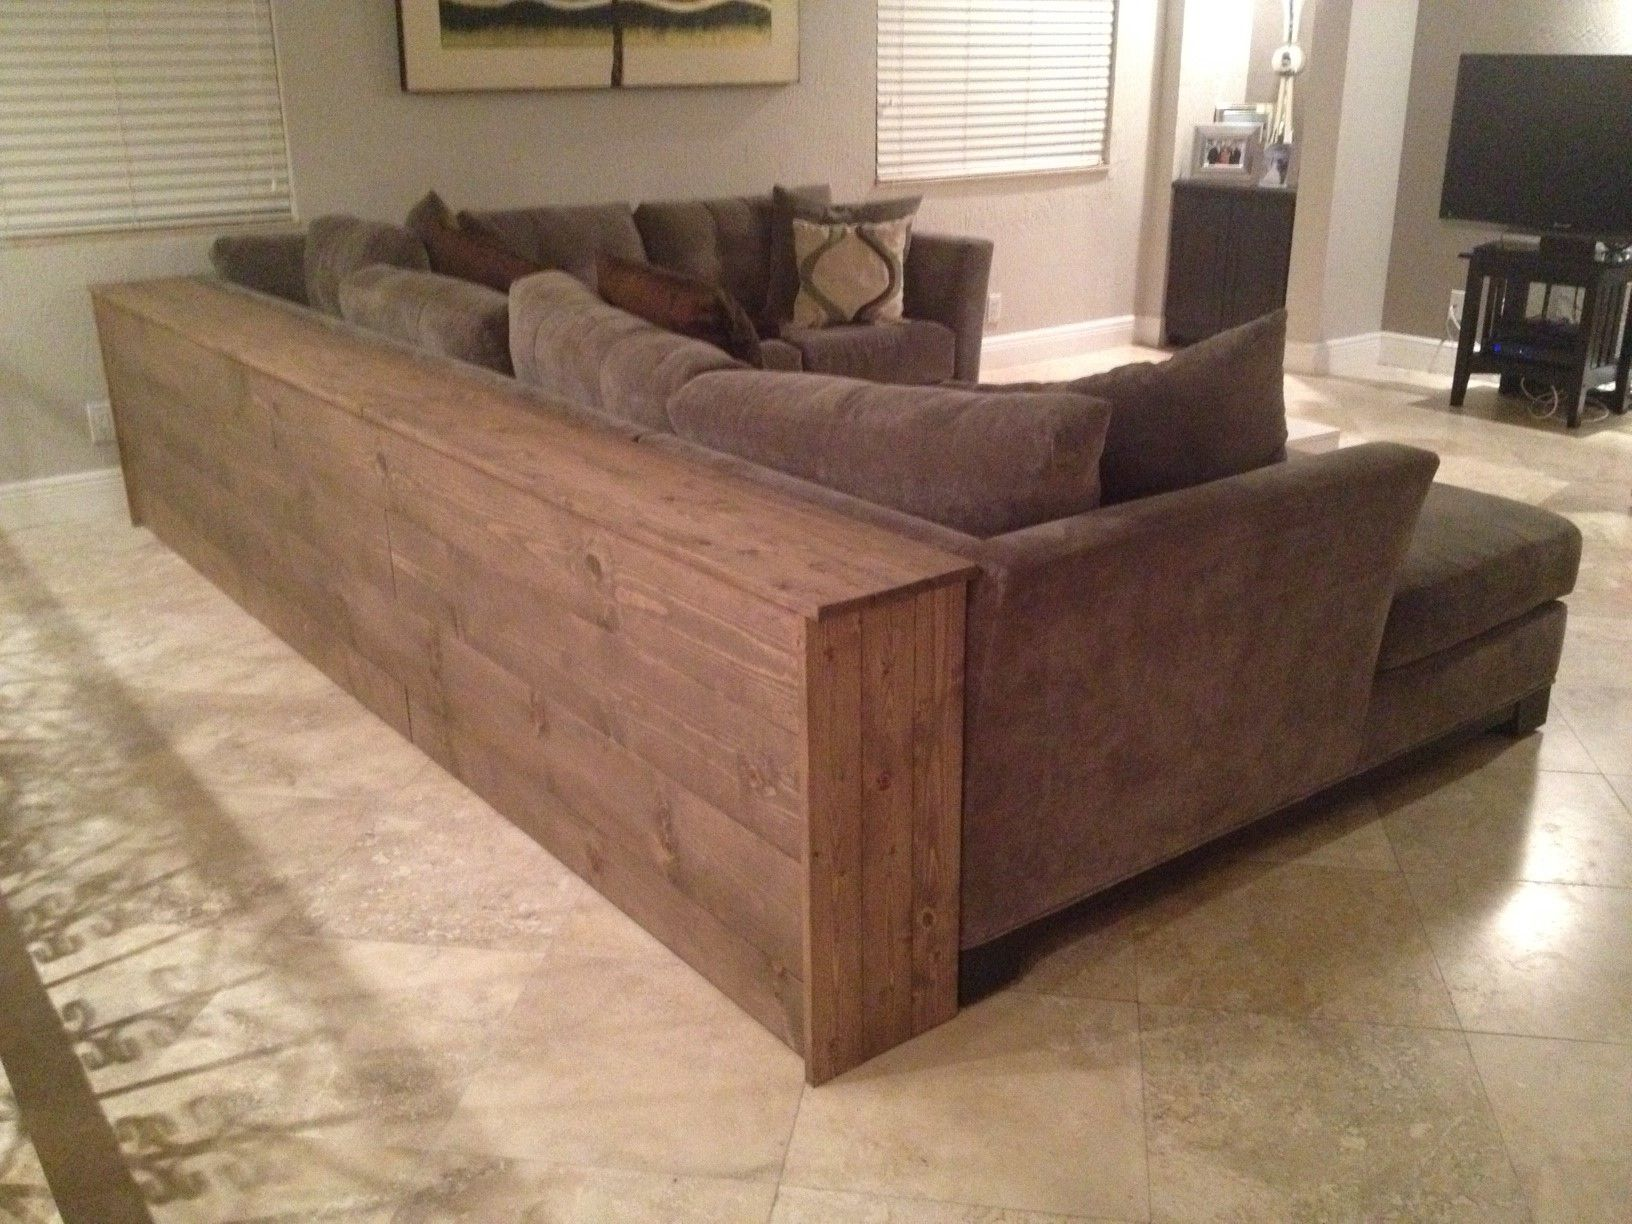 Custom Made Sofas Floor Sofa Australia Wood Table Couch Furniture